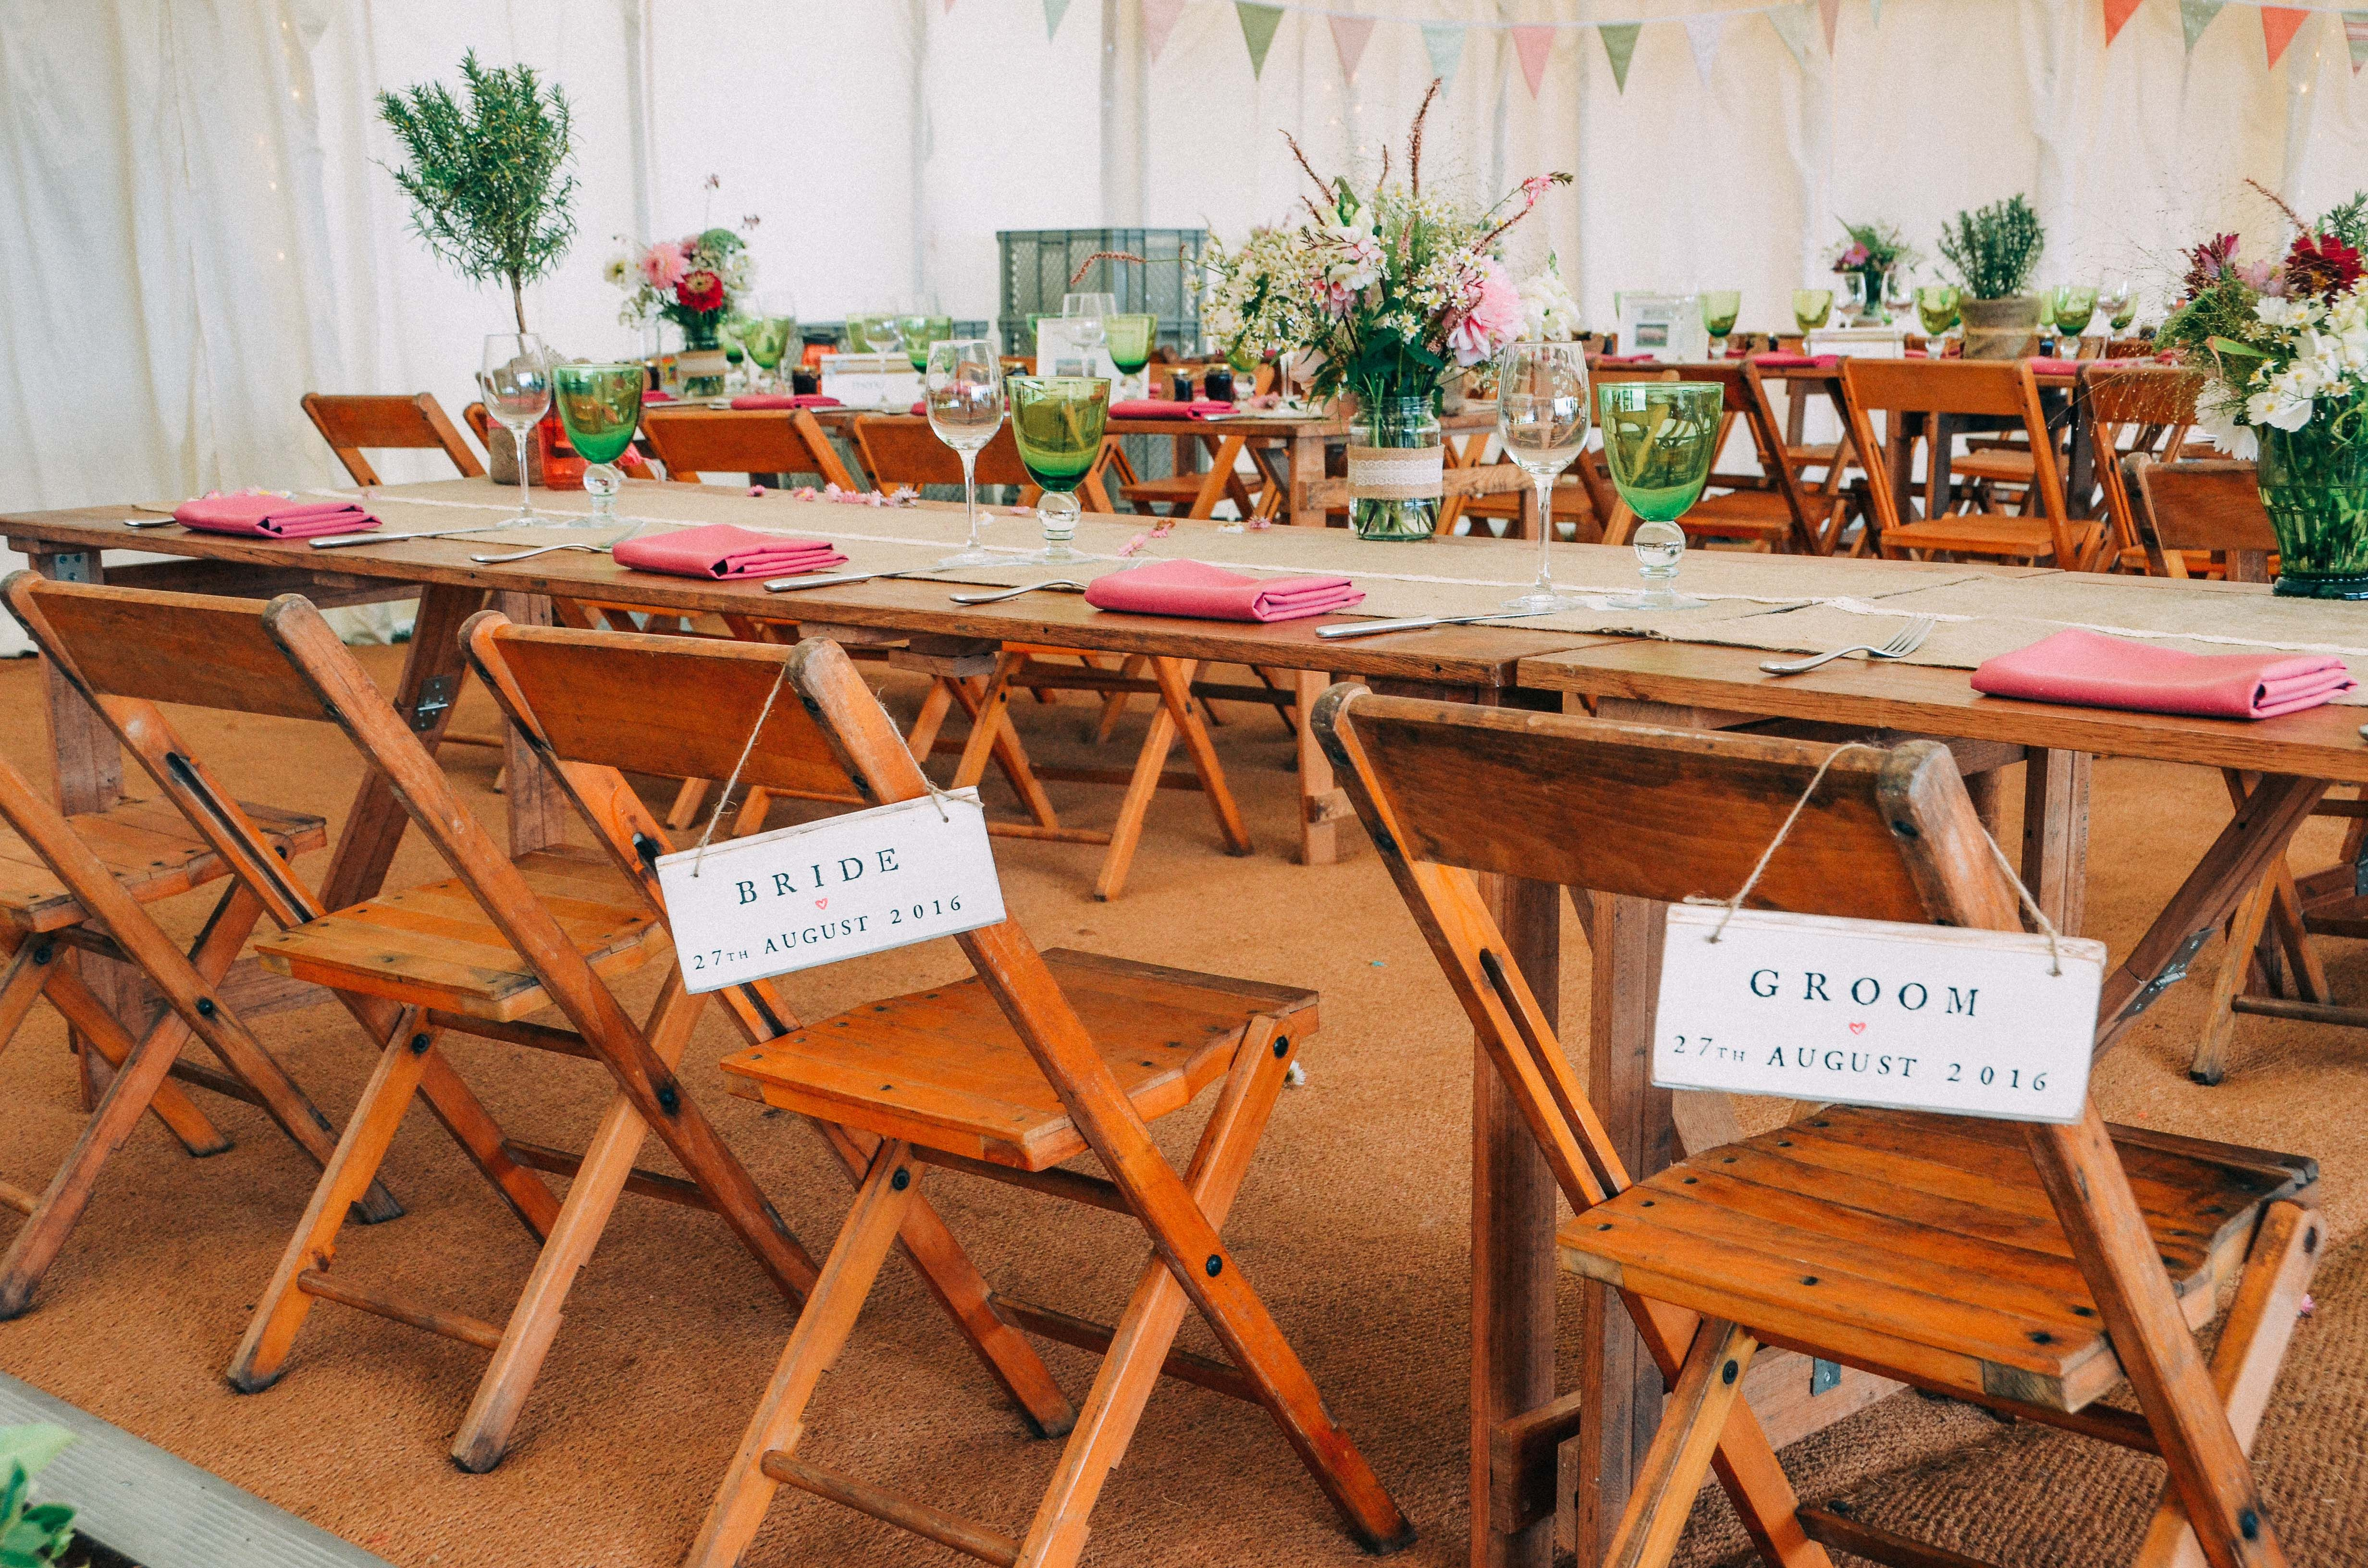 Rustic Hire Wedding 2017 Tables Chairs Rustic Wooden